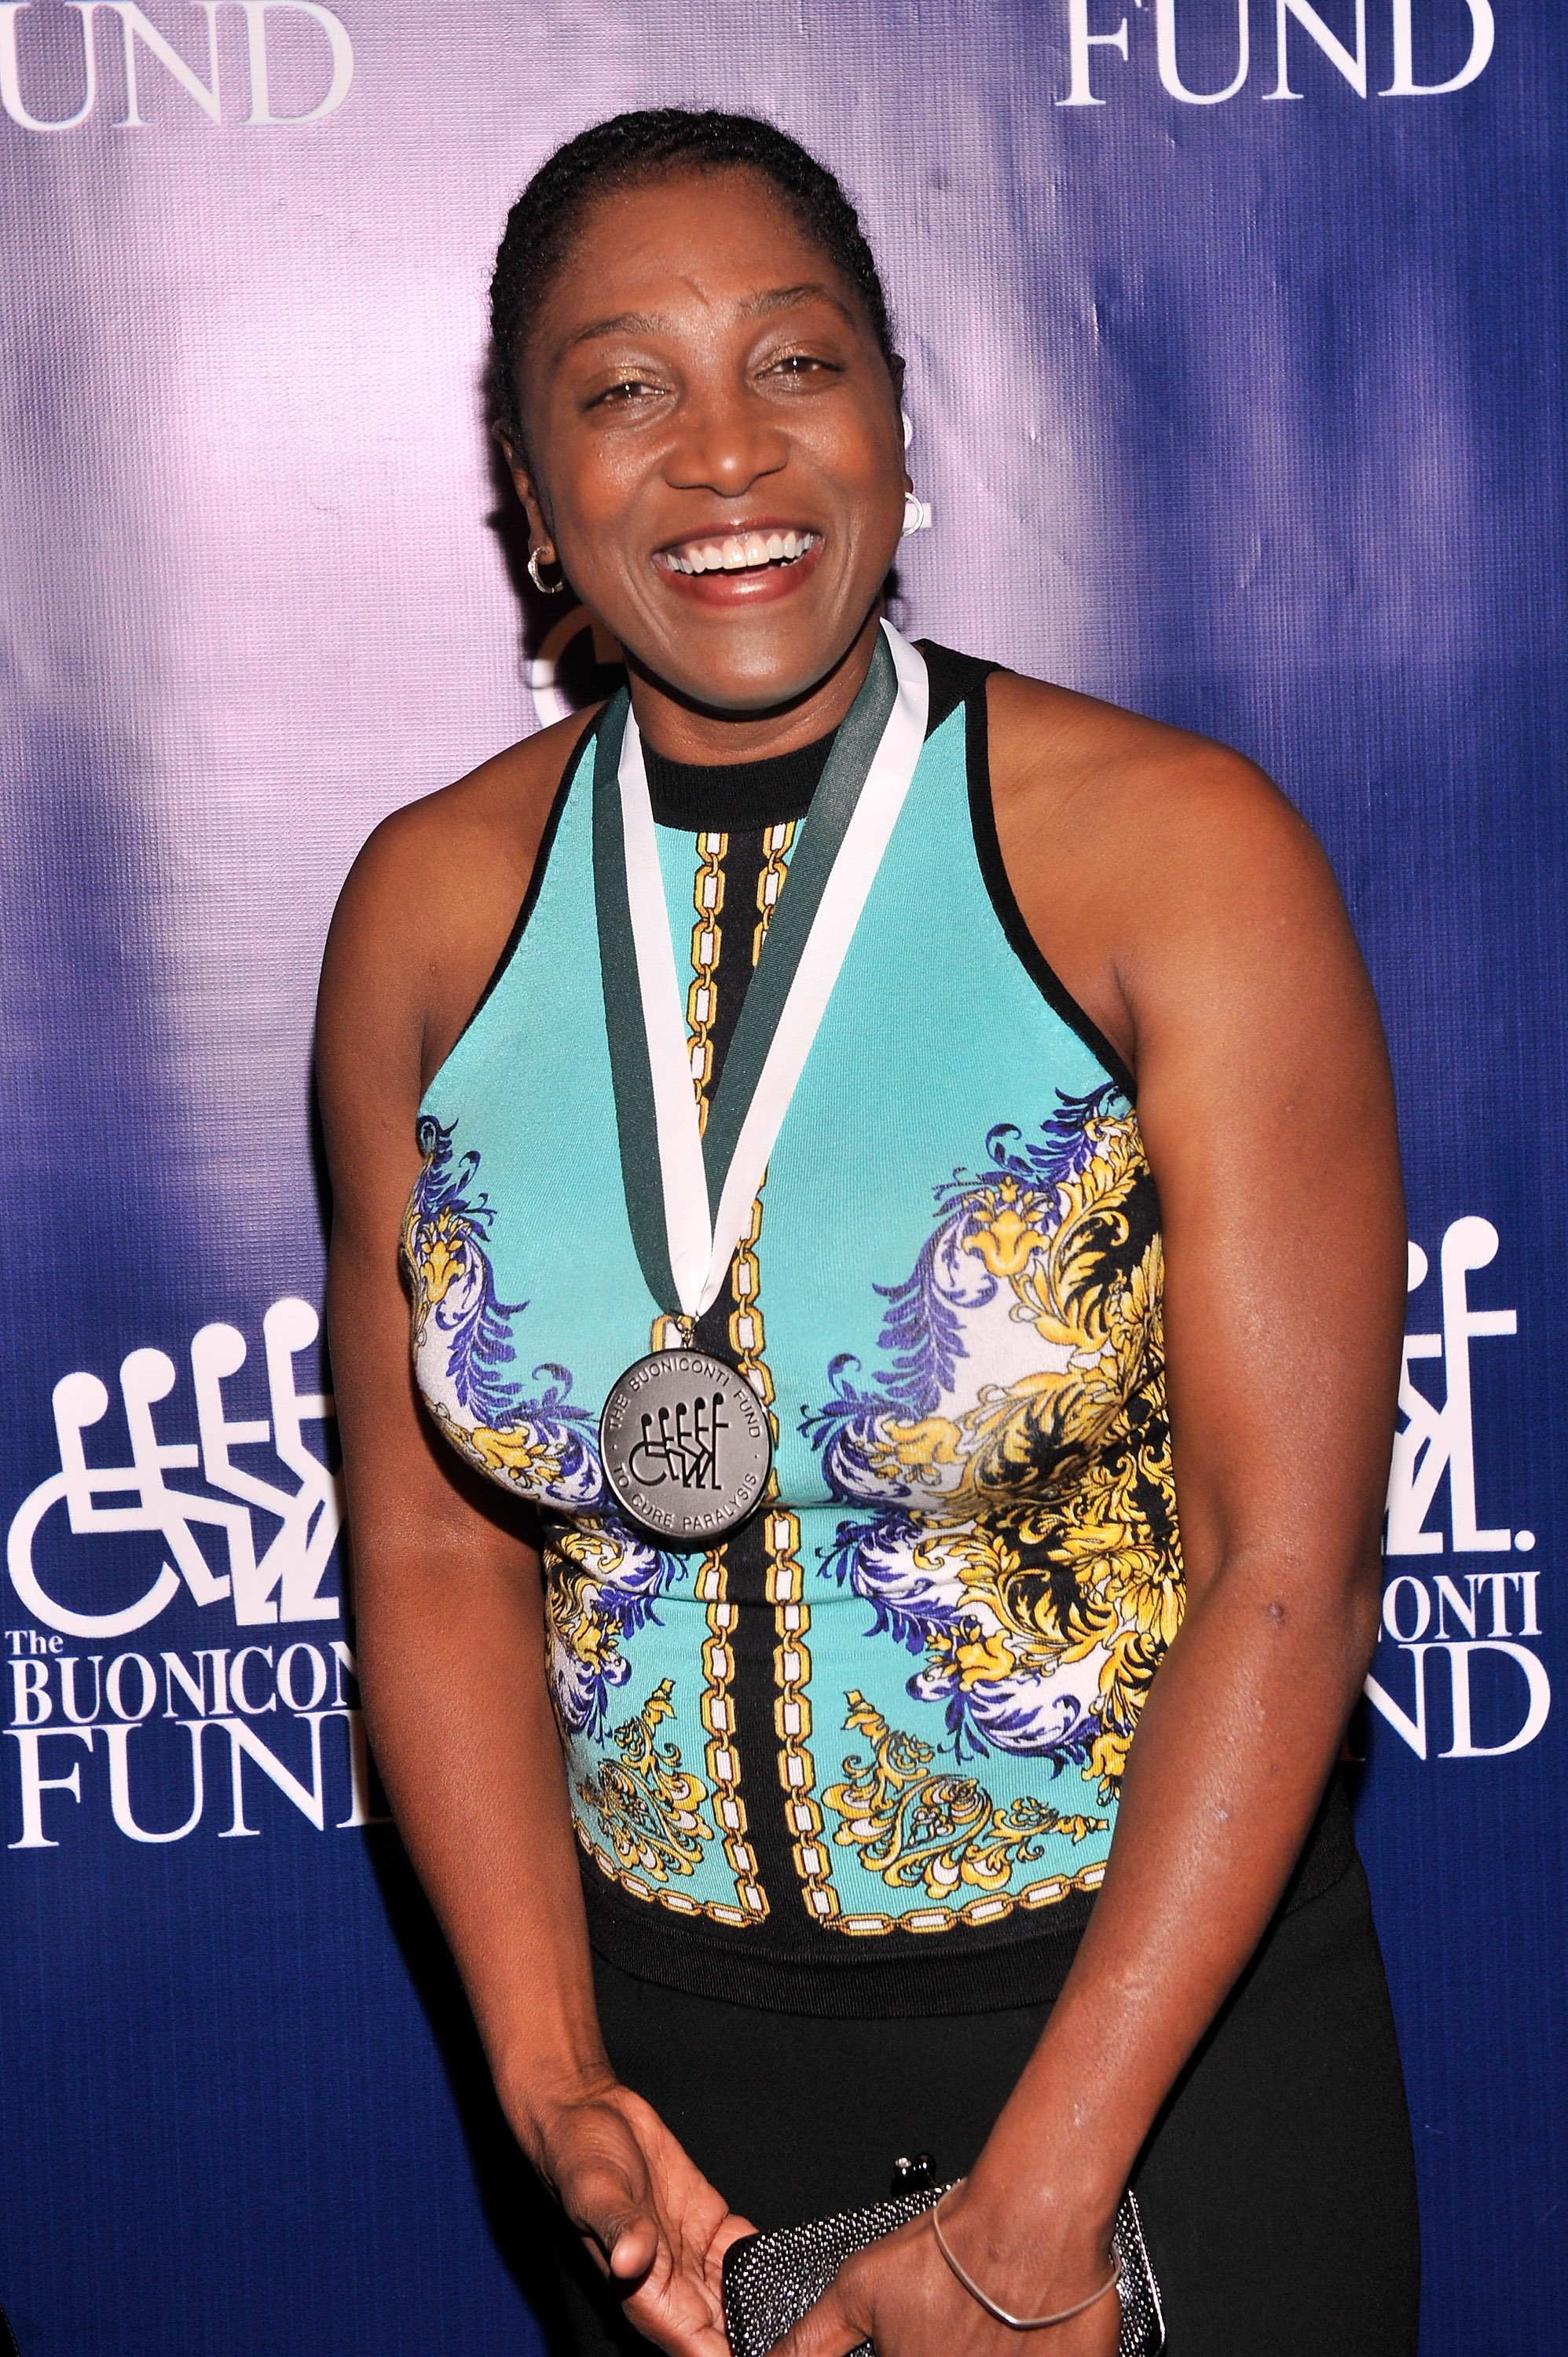 Teresa Edwards attends the 28th Annual Great Sports Legends Dinner on September 30, 2013 | Photo: Getty Images